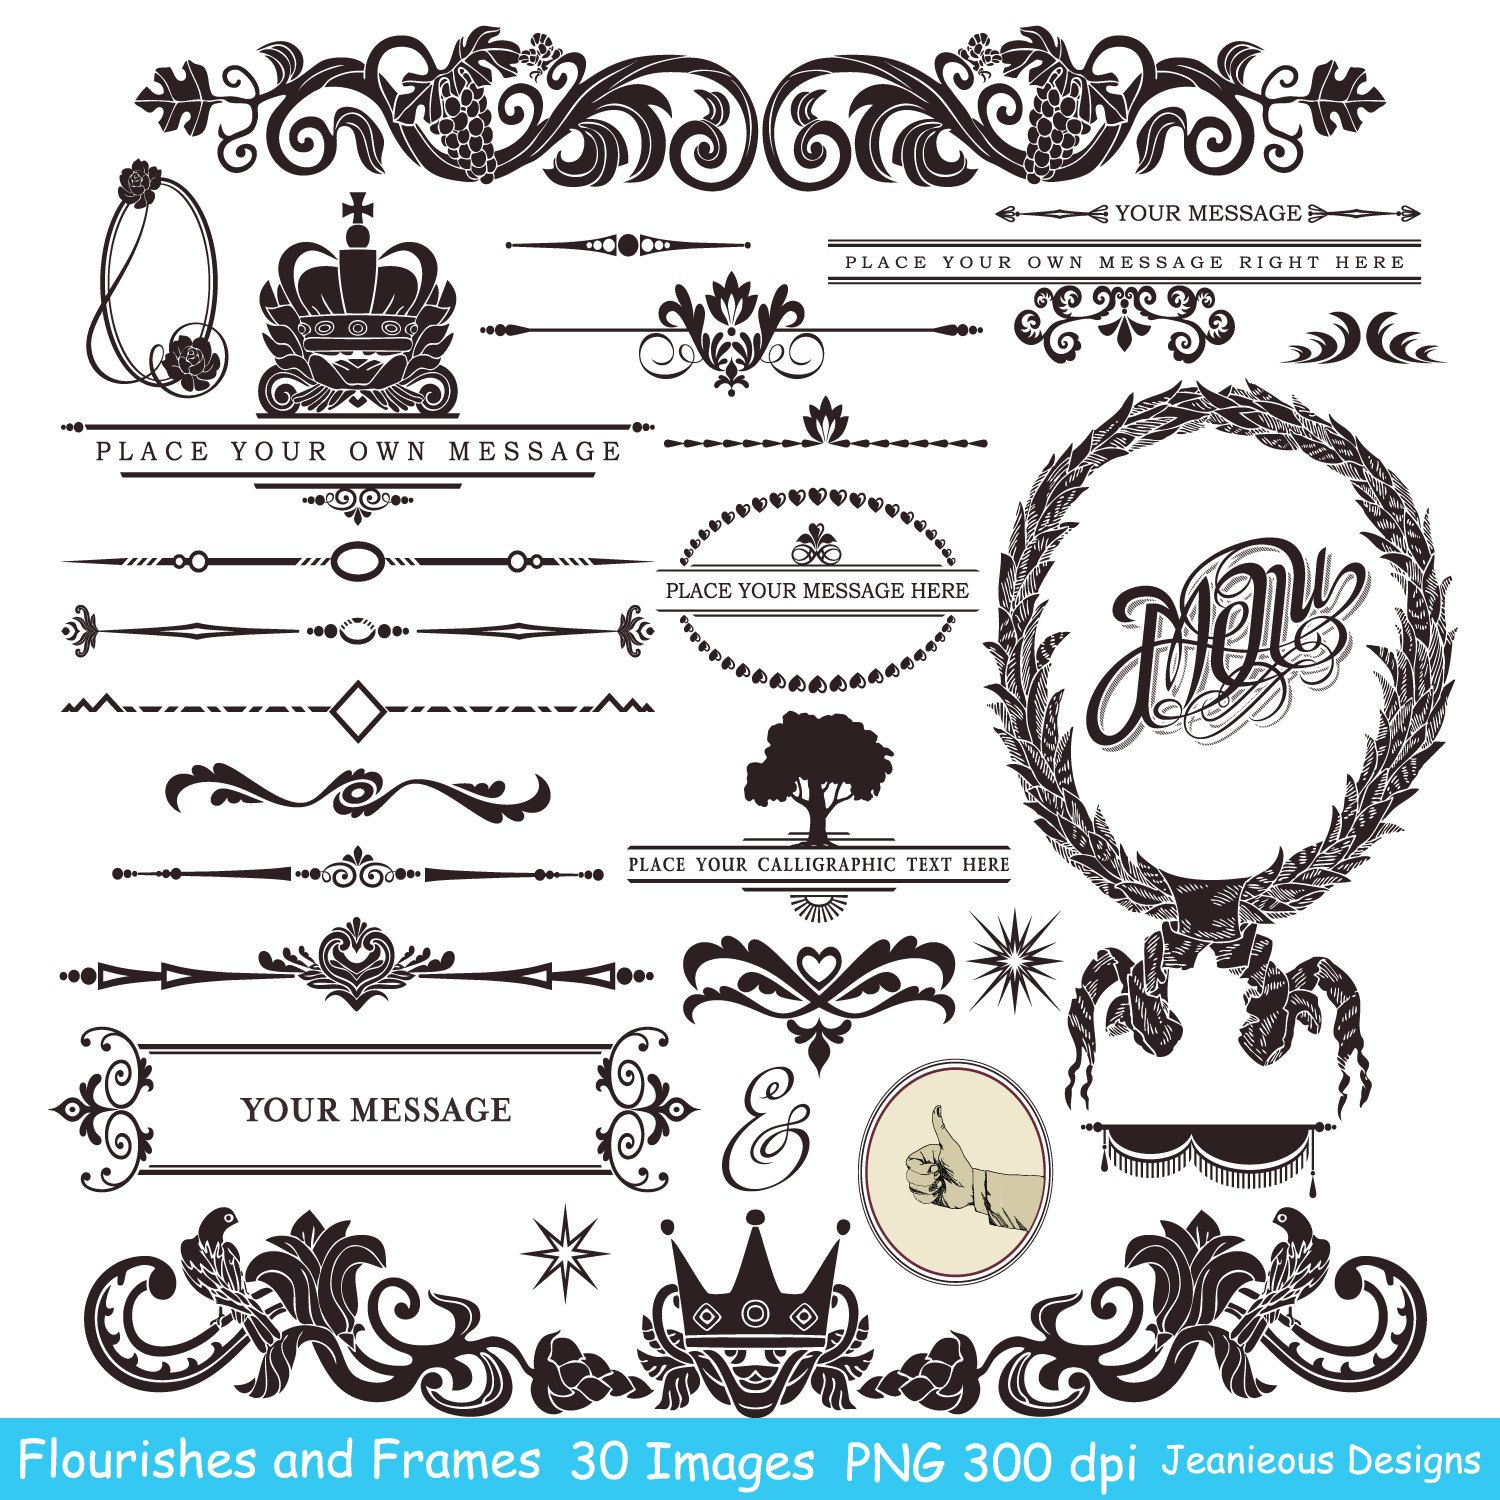 Vintage Calligraphy Clip art Design Style Elements Wedding ...